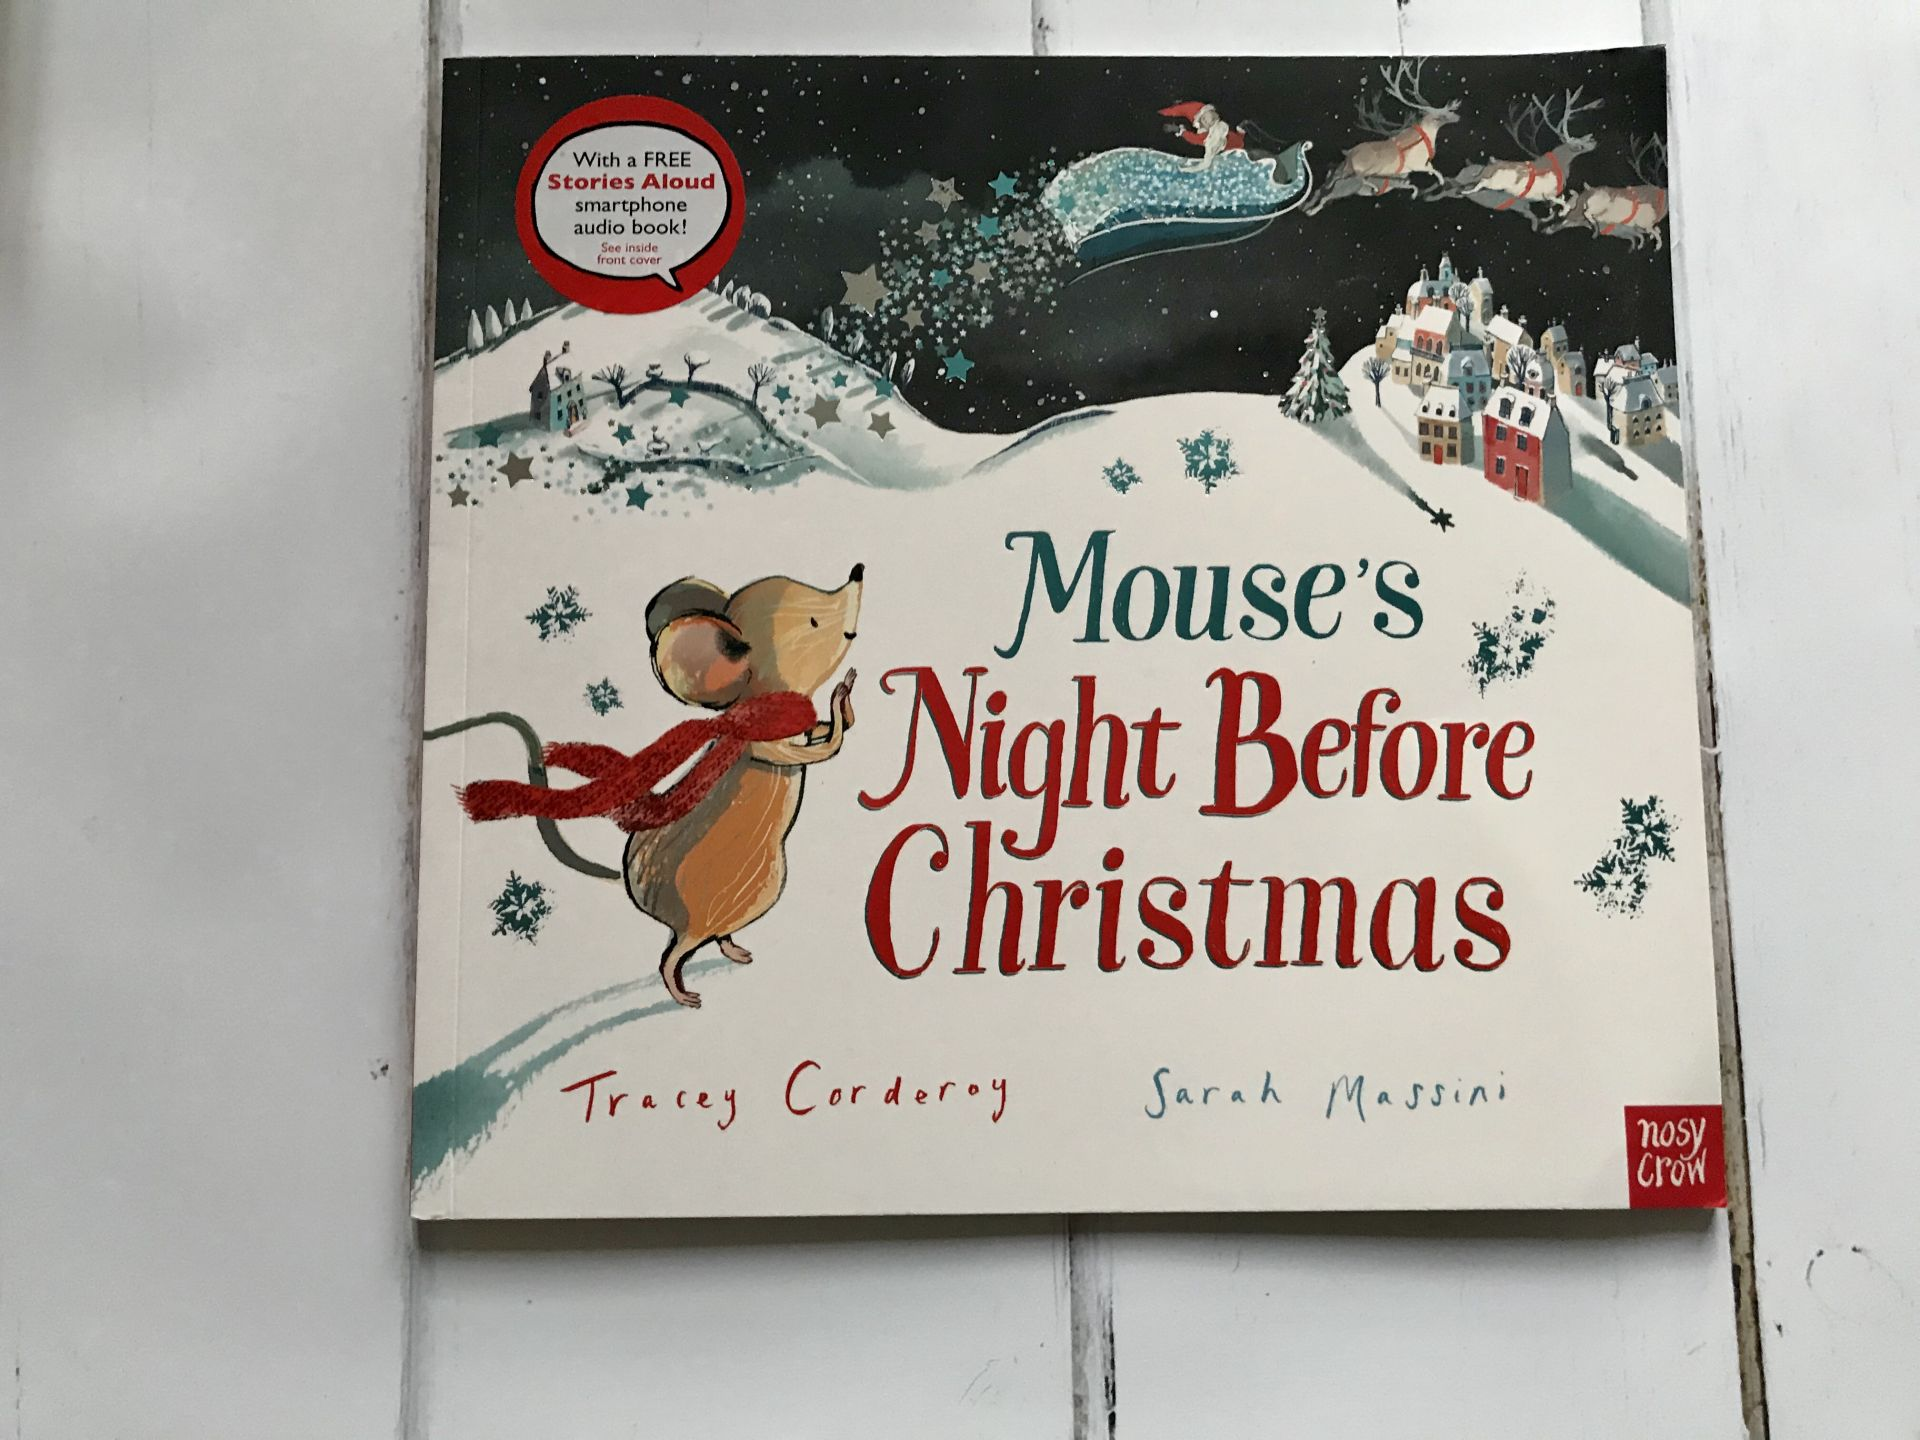 A Christmas story book called Mouse's Night before Christmas